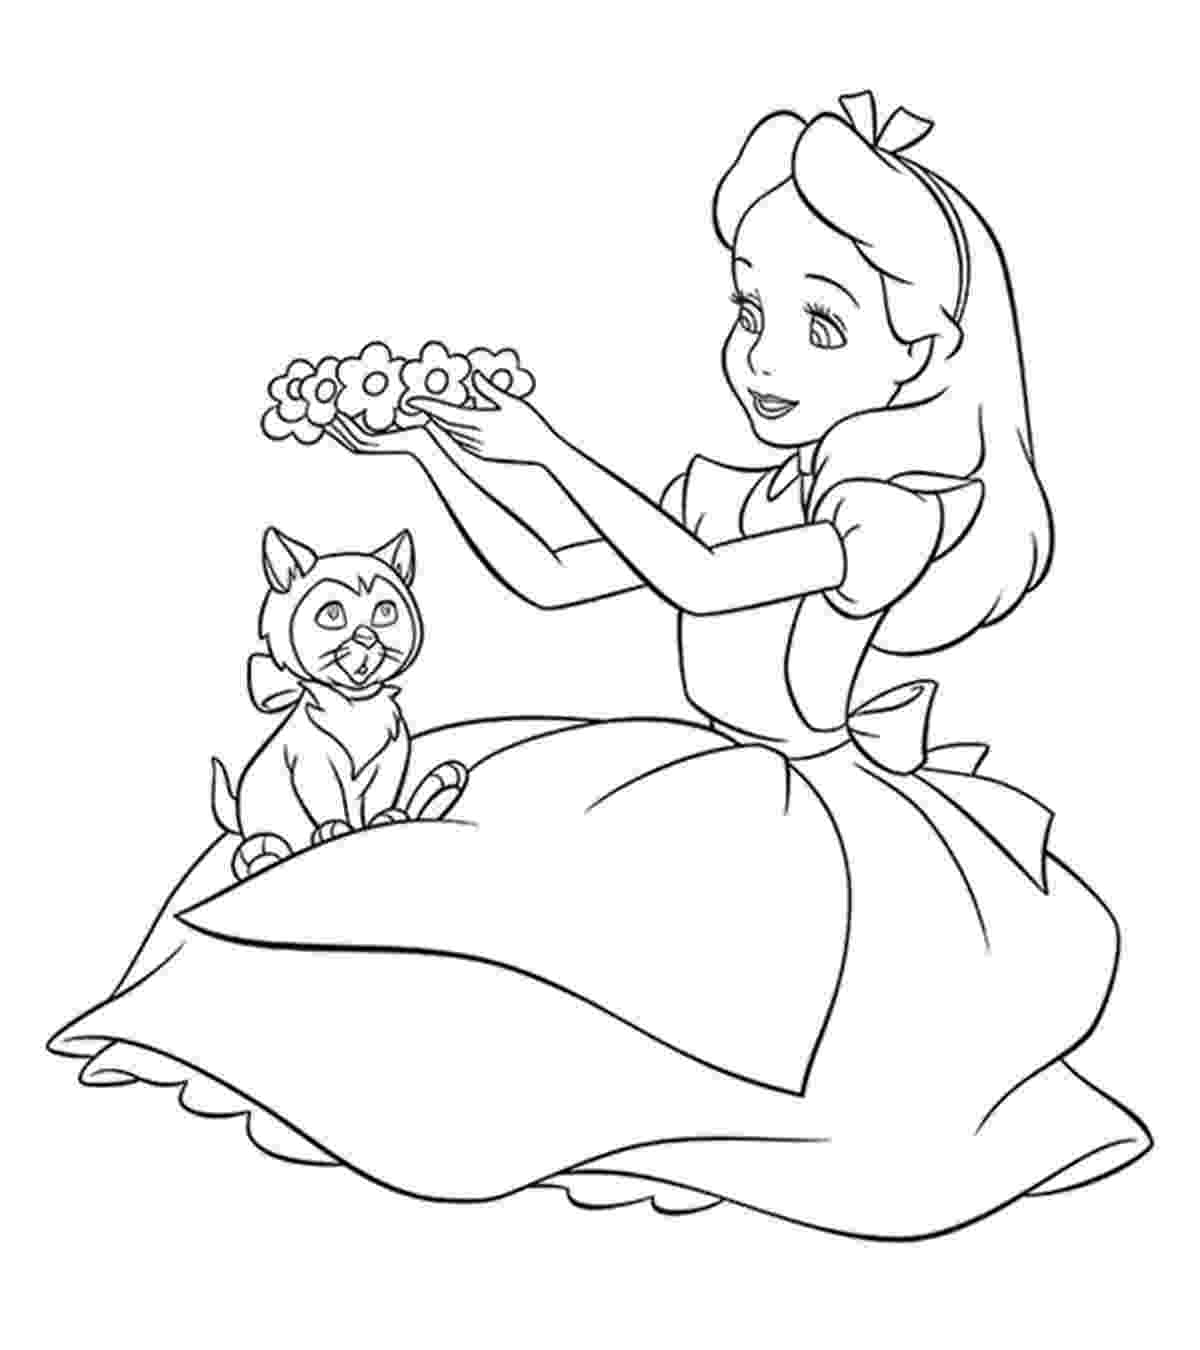 disney coloring pages online disney coloring pages to download and print for free pages online disney coloring